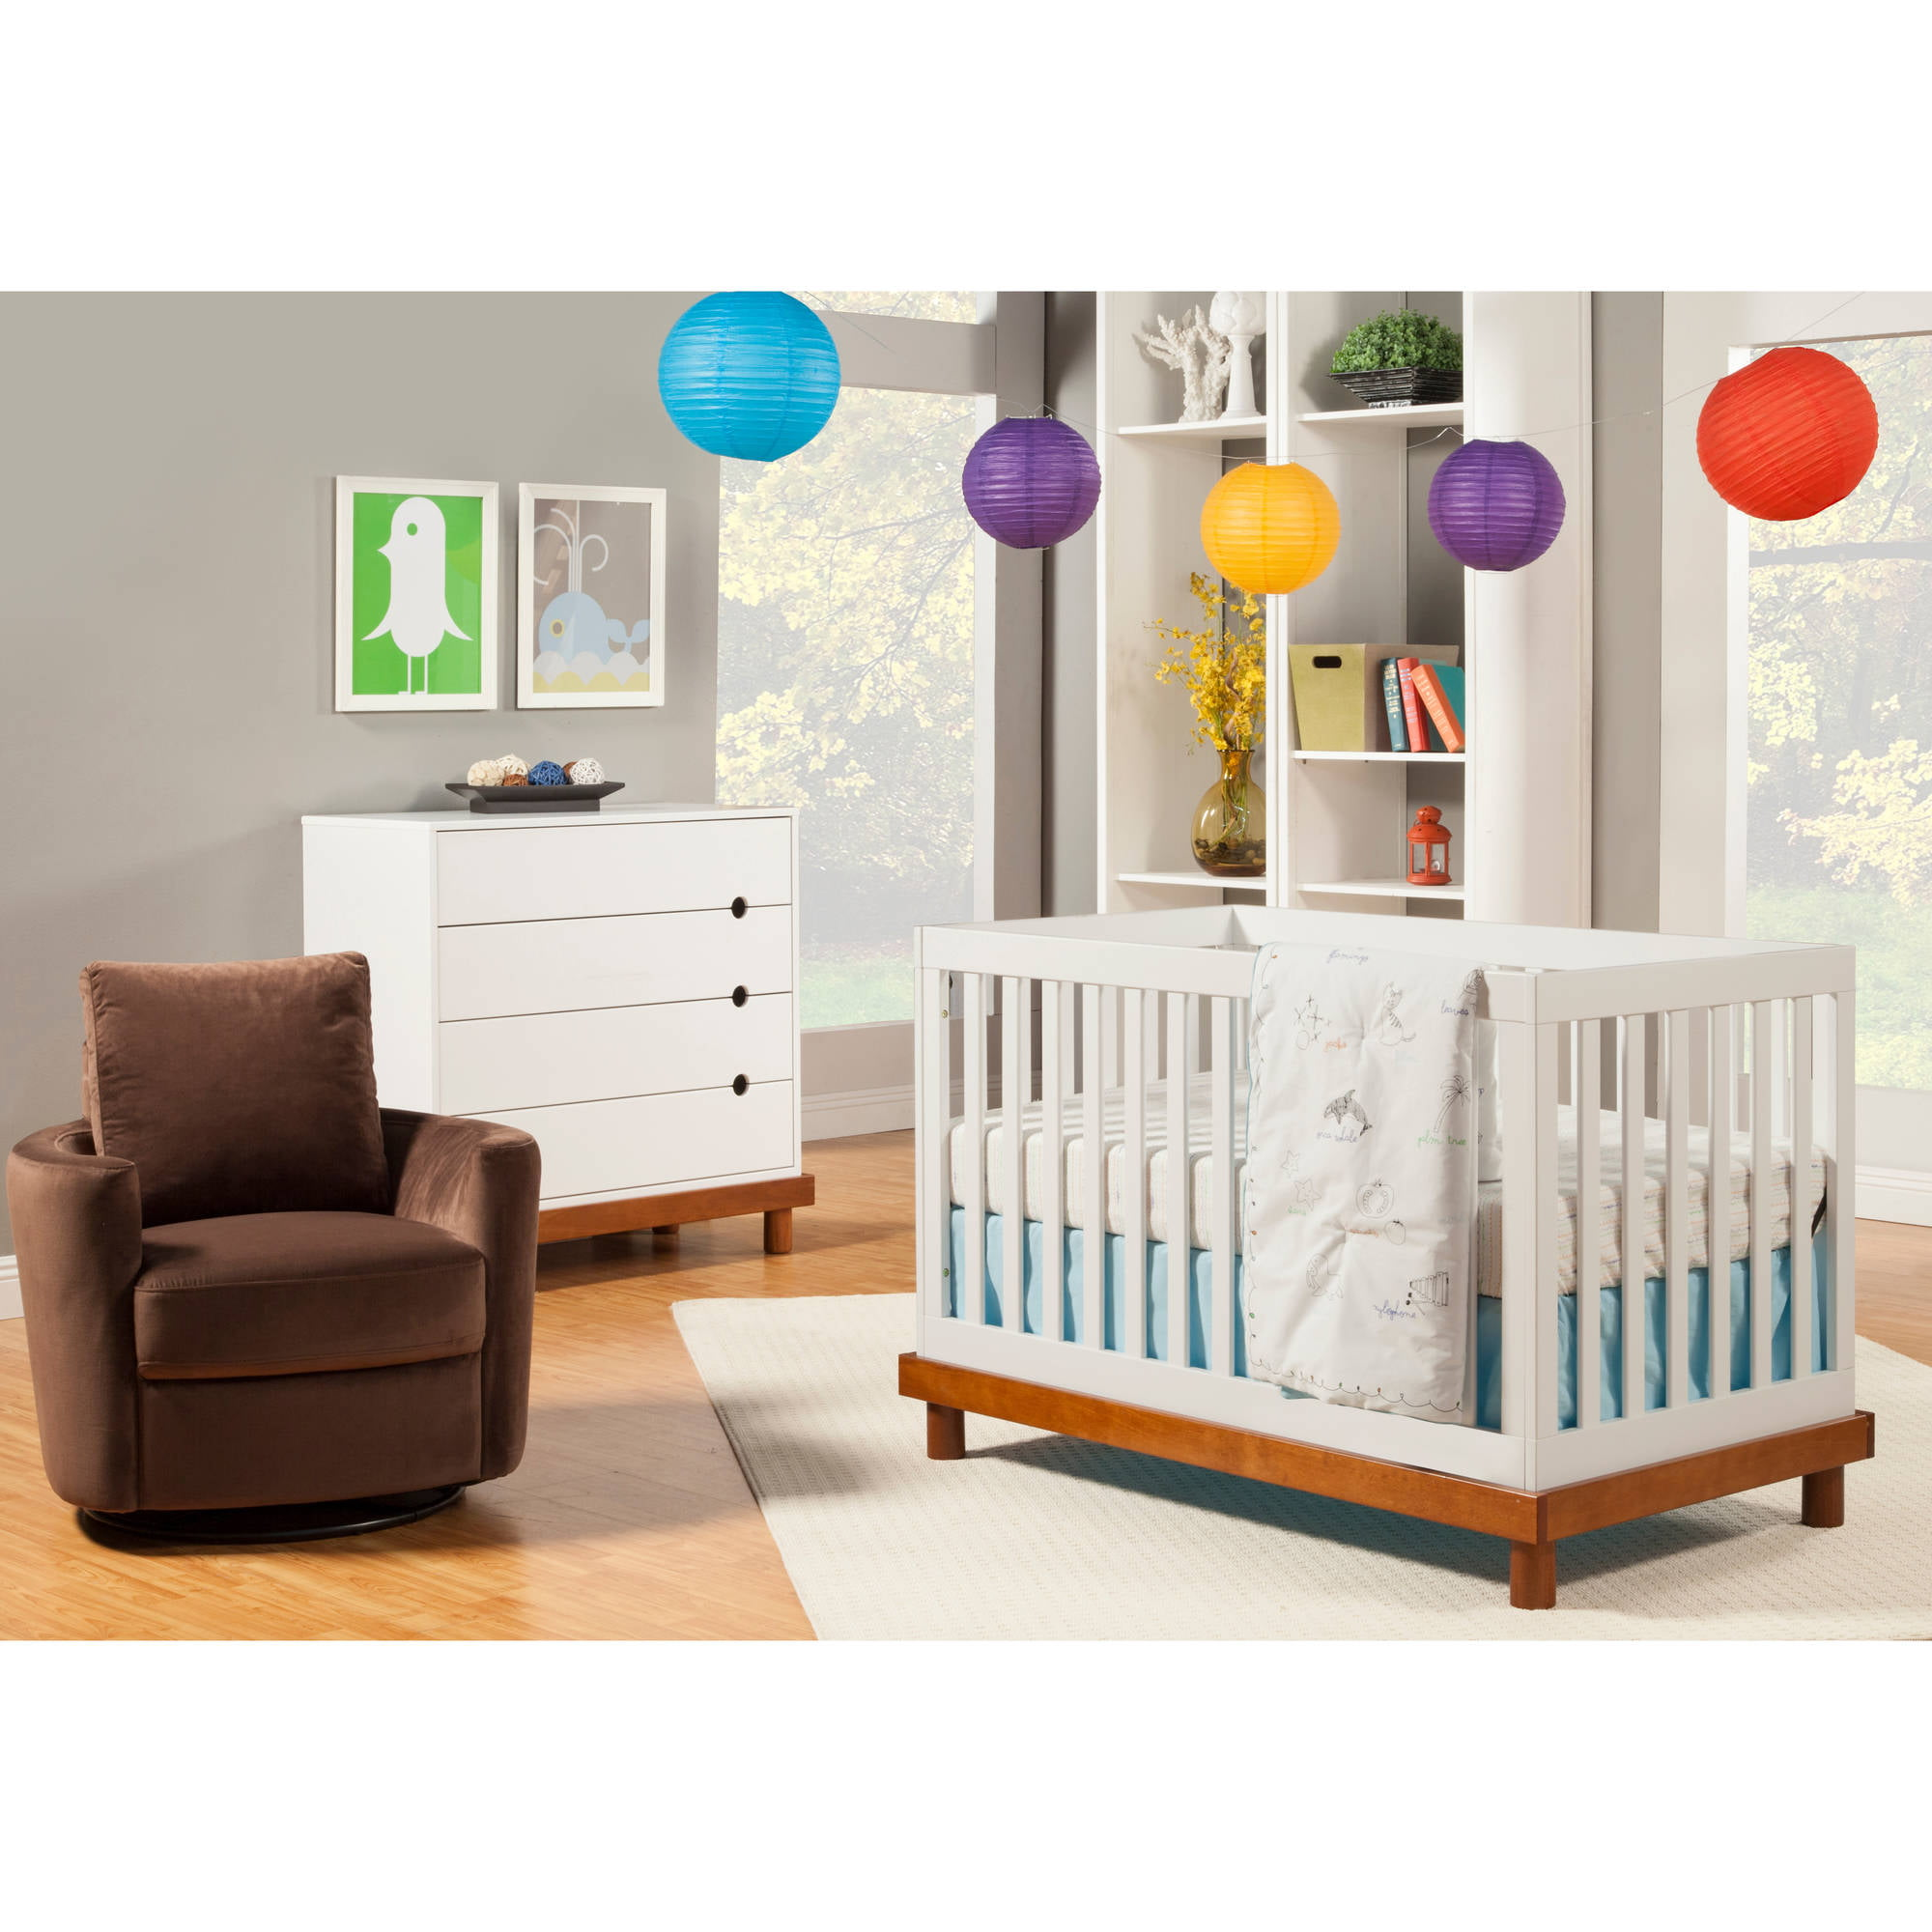 Baby cribs big w - Baby Cribs Big W 54